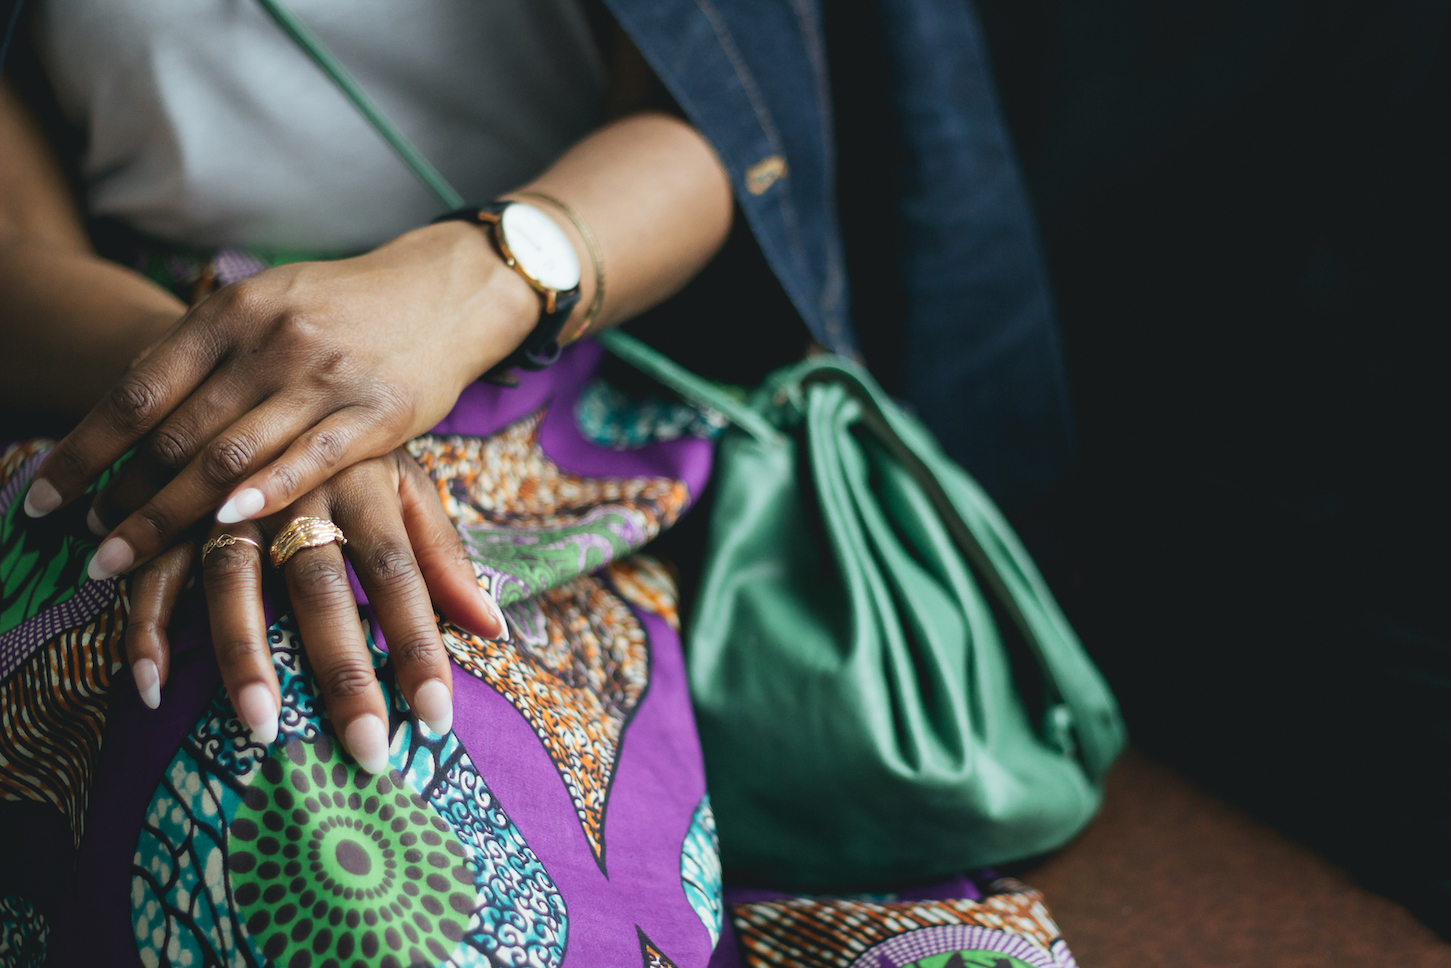 Gold jewelry with an African-print skirt designed by Kathleen // Week Of Outfits Series: A Week Of Well-Crafted & Beautiful Outfits With Kathleen Elie, Founder Of Conscious & Chic on The Good Trade